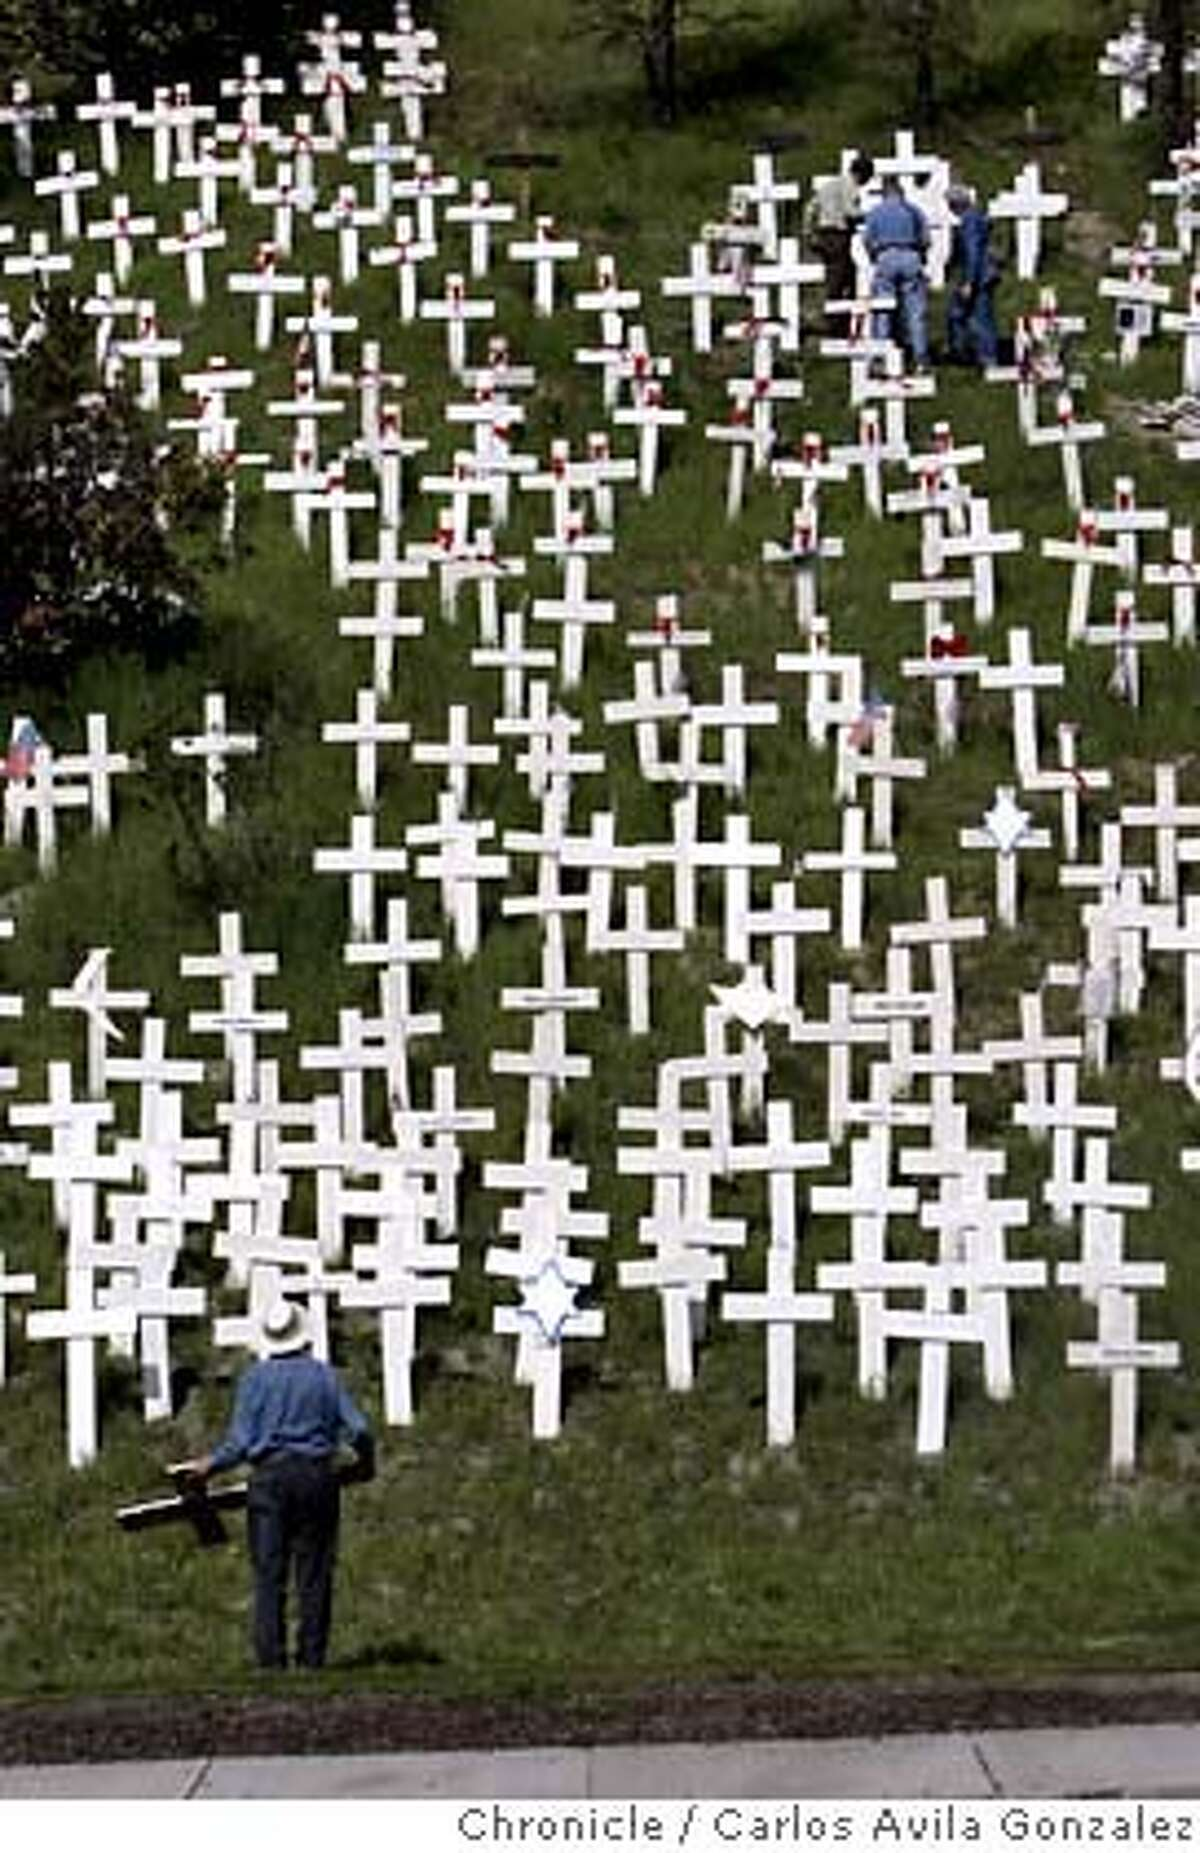 CROSSES05_010_CAG.JPG Volunteers added about 200 new crosses to the controversial Iraq War memorial in Lafayette, Ca., on Sunday, March 4, 2007, enough to represent each of the 3,161 soldiers killed in Iraq since the start of the war. The group, opposed to the war in Iraq, has expanded the stark display overlooking the Lafayette BART station over the past several weeks � gathering in cold weather and at times staging candlelight vigils. Several said blanketing this green hillside with a sea of crosses has reinvigorated their sense of civic activism to a level they haven�t experienced not seen since the Vietnam War. Photo by Carlos Avila Gonzalez/The San Francisco Chronicle Photo taken on 3/4/07, in Lafayette, Ca, USA. **All names cq (source) MANDATORY CREDIT FOR PHOTOG AND SAN FRANCISCO CHRONICLE/NO SALES-MAGS OUT